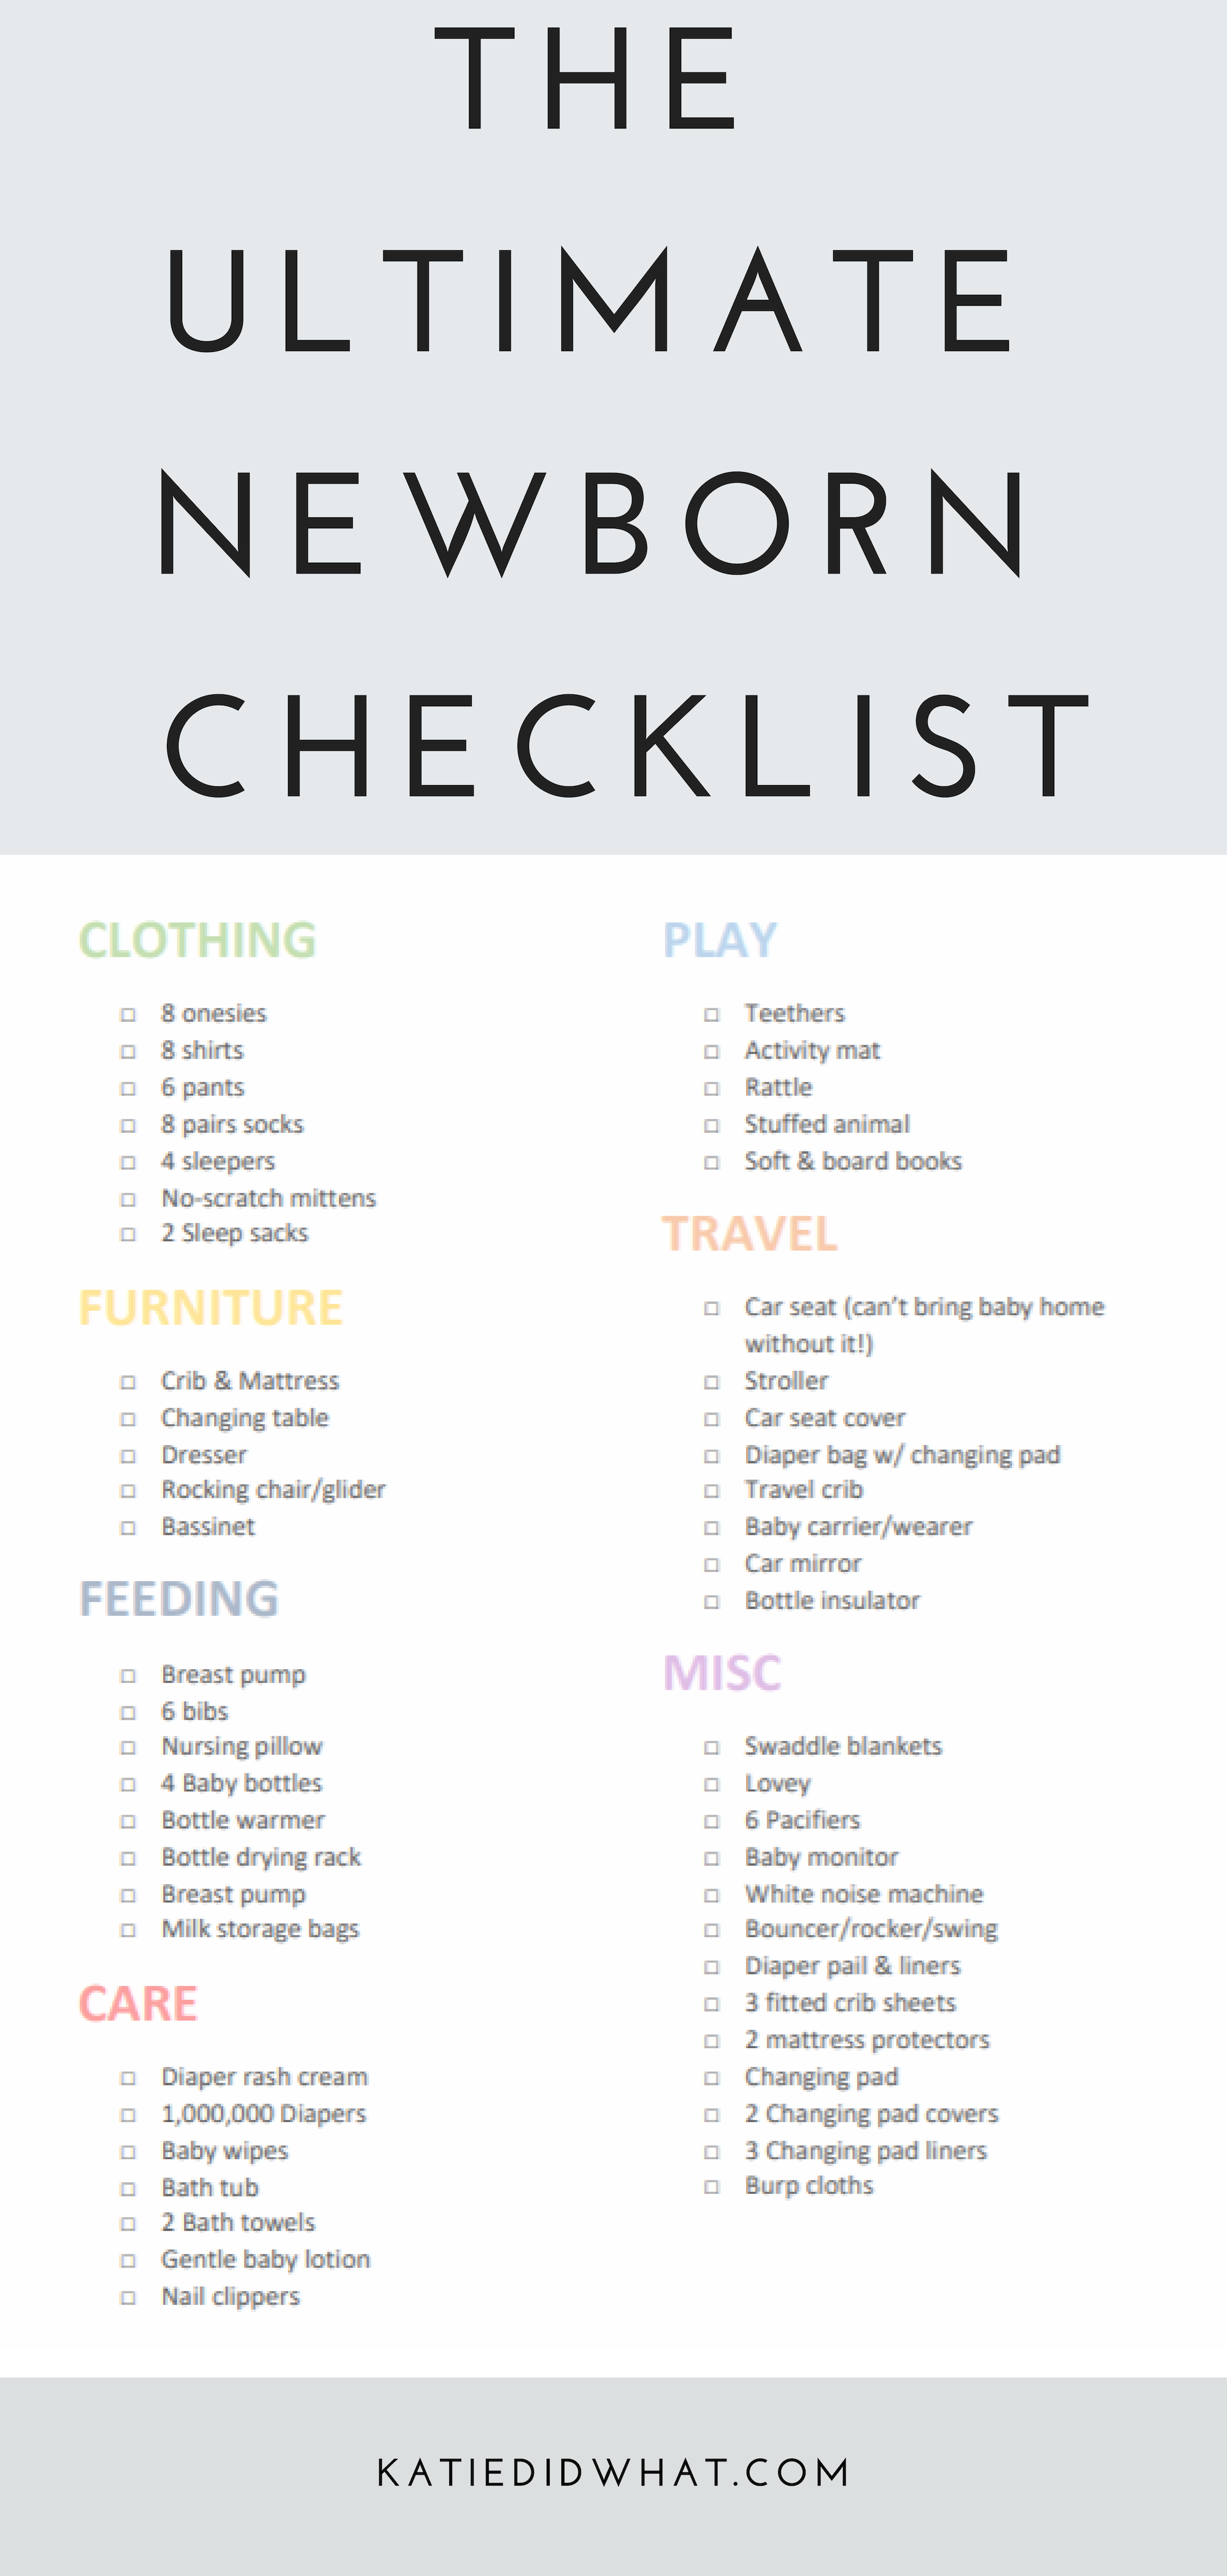 Calling All Moms Get The Must Have Newborn Baby Tips In This Free Downloadable Checklist Katiedidwhat Mo Newborn Checklist Newborn Baby Tips Baby Care Tips